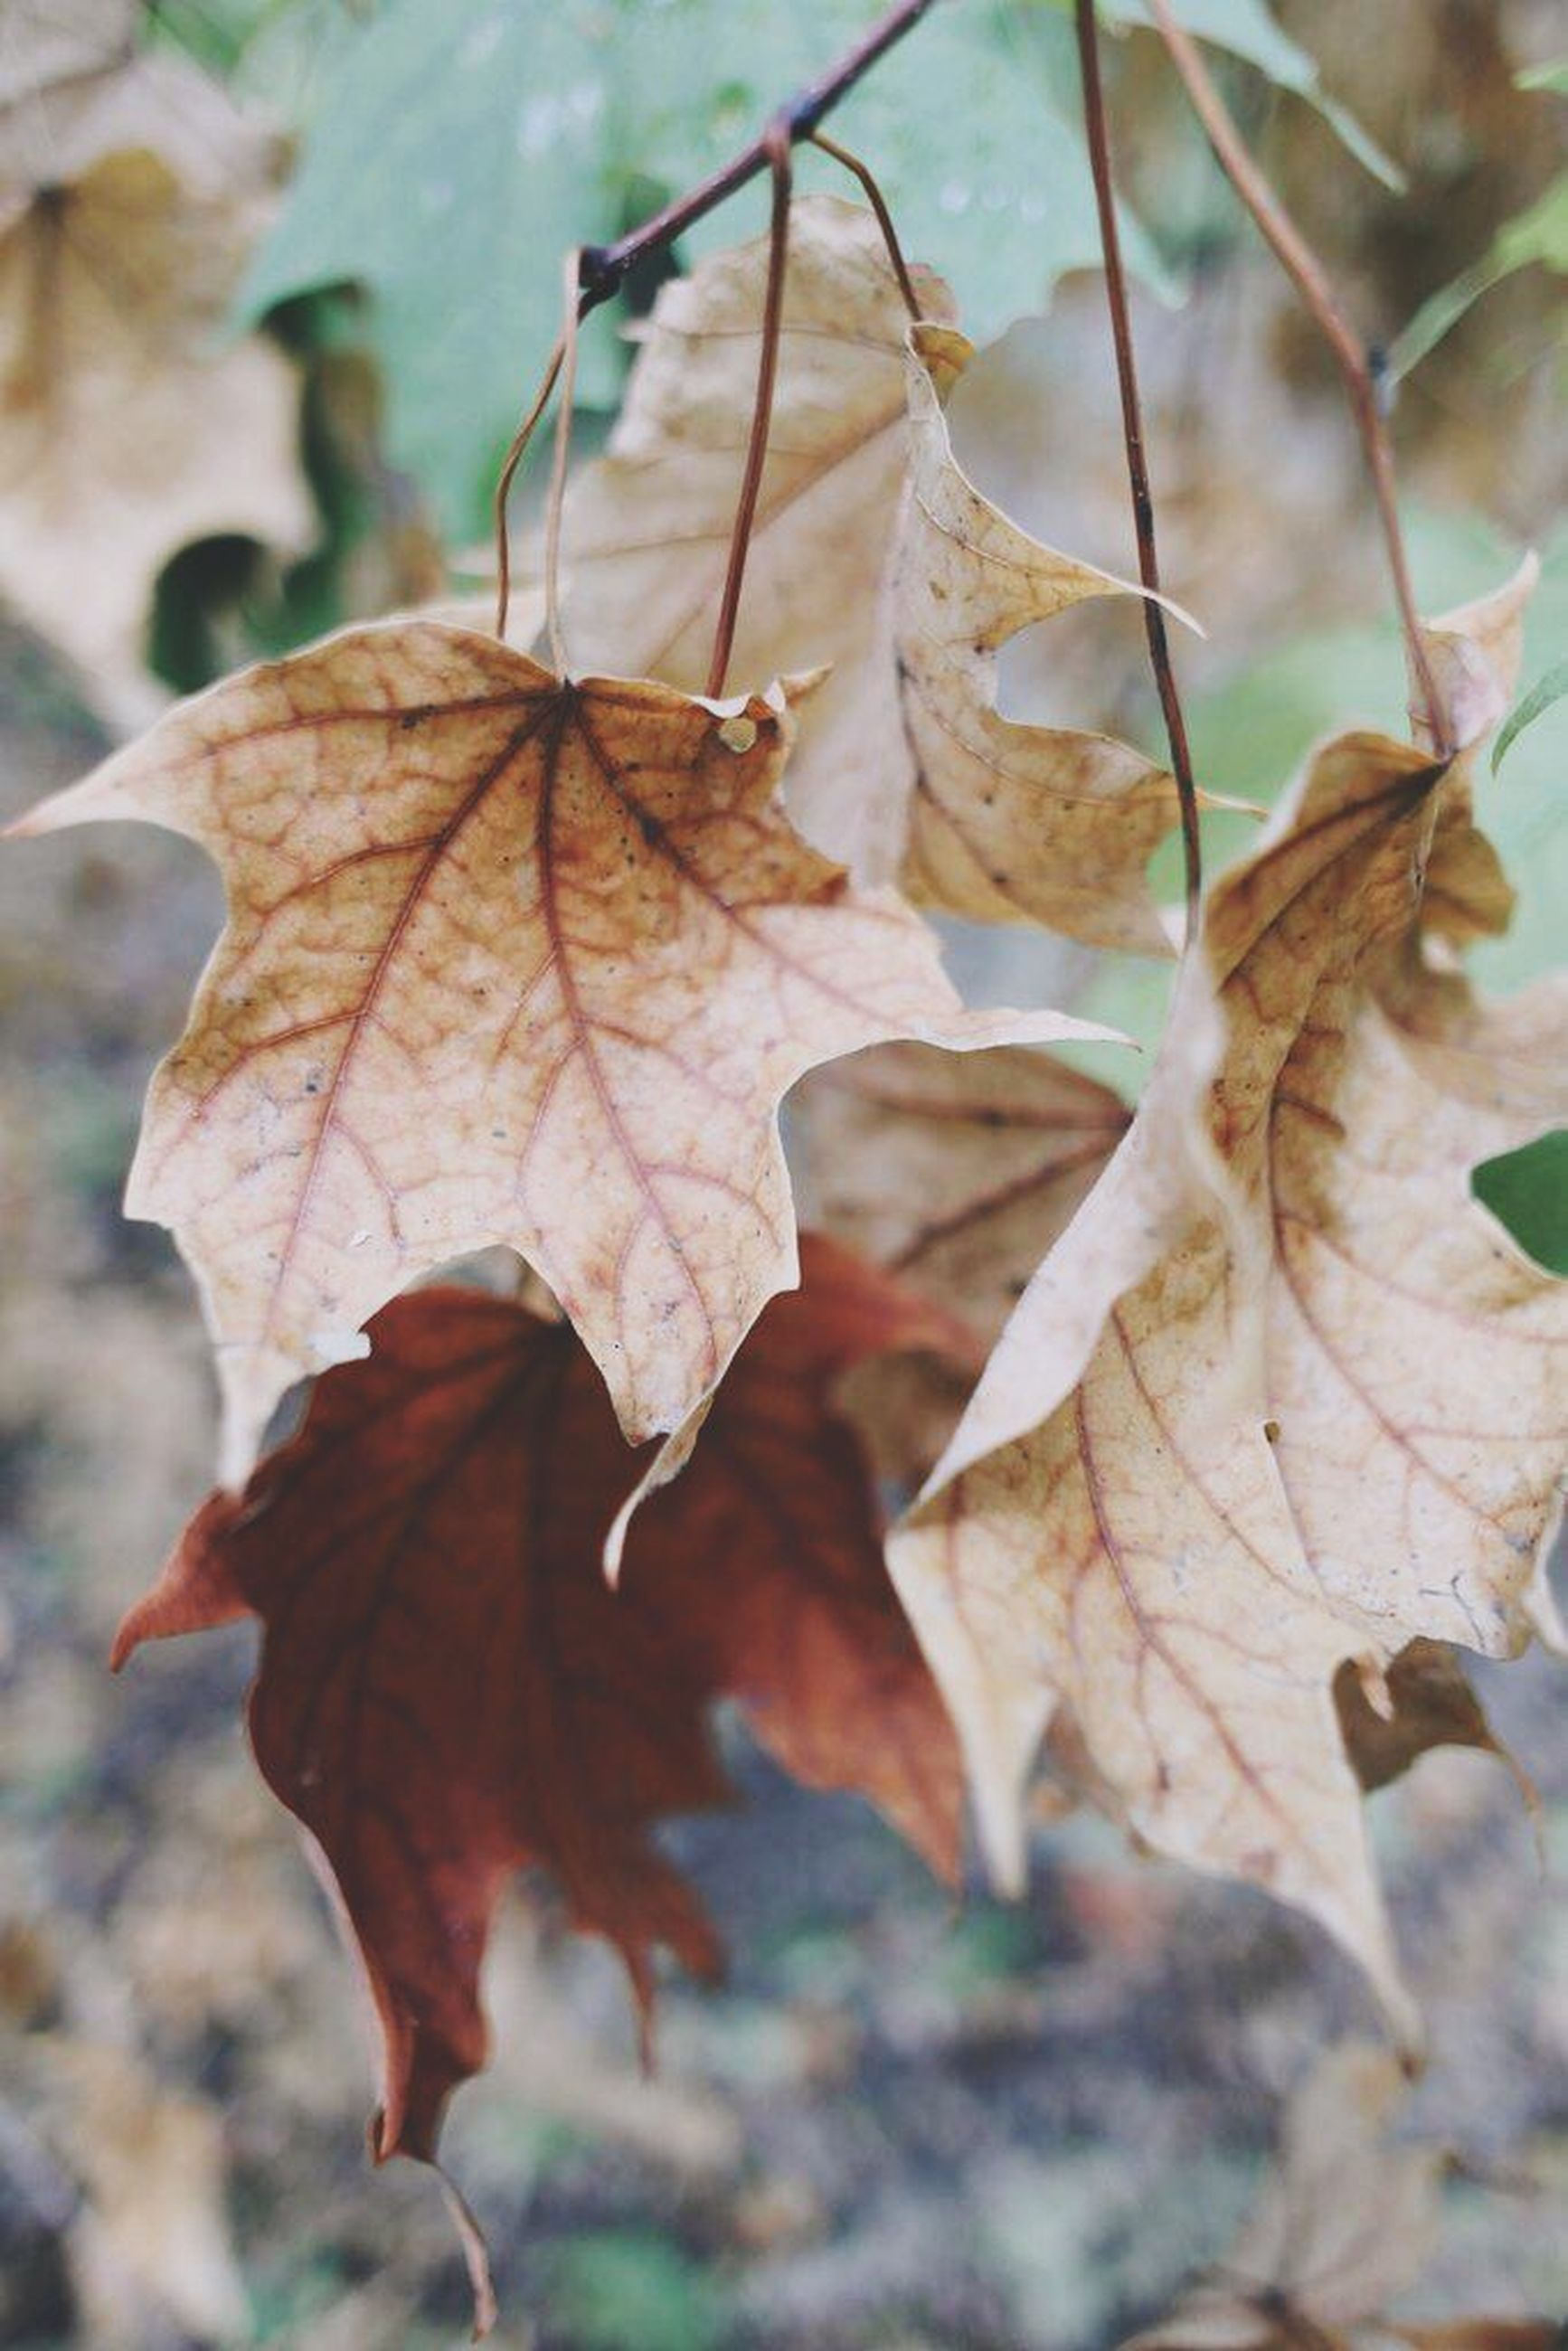 leaf, dry, autumn, close-up, leaf vein, focus on foreground, nature, change, season, leaves, natural pattern, tranquility, aging process, day, growth, plant, branch, outdoors, twig, beauty in nature